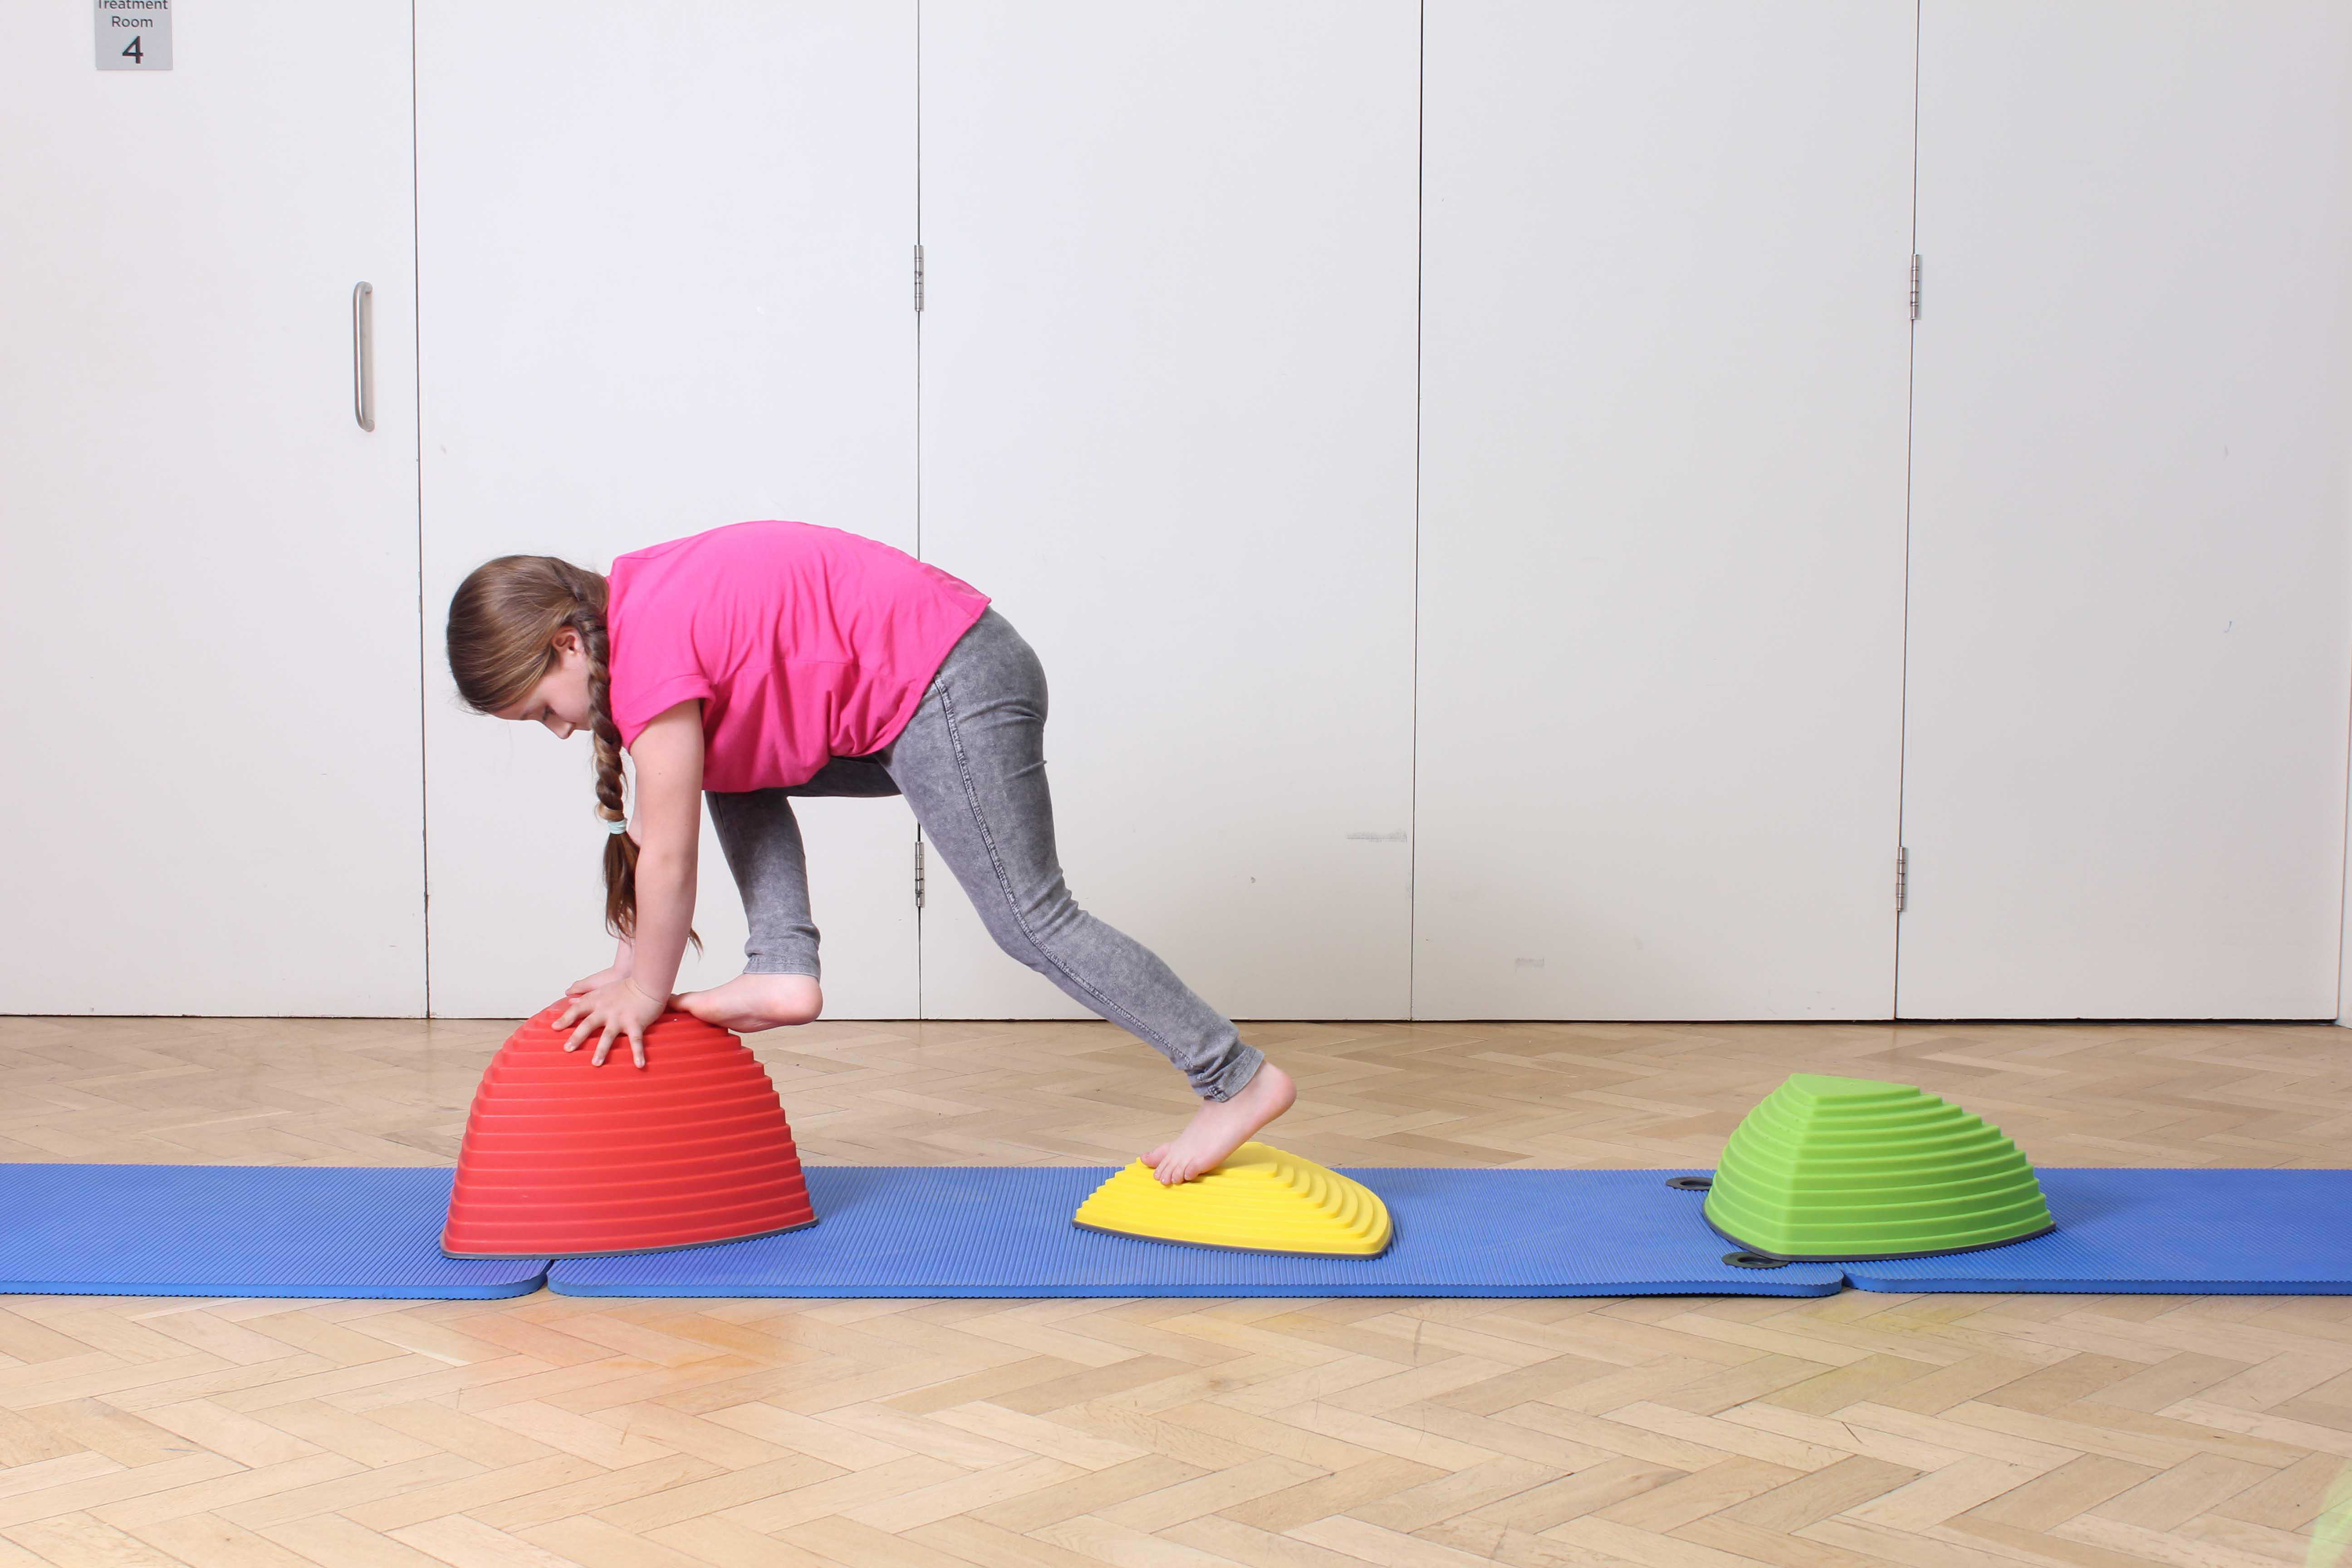 Toning and strengthening exercises assisted by specilaist paediatric physiotherapist